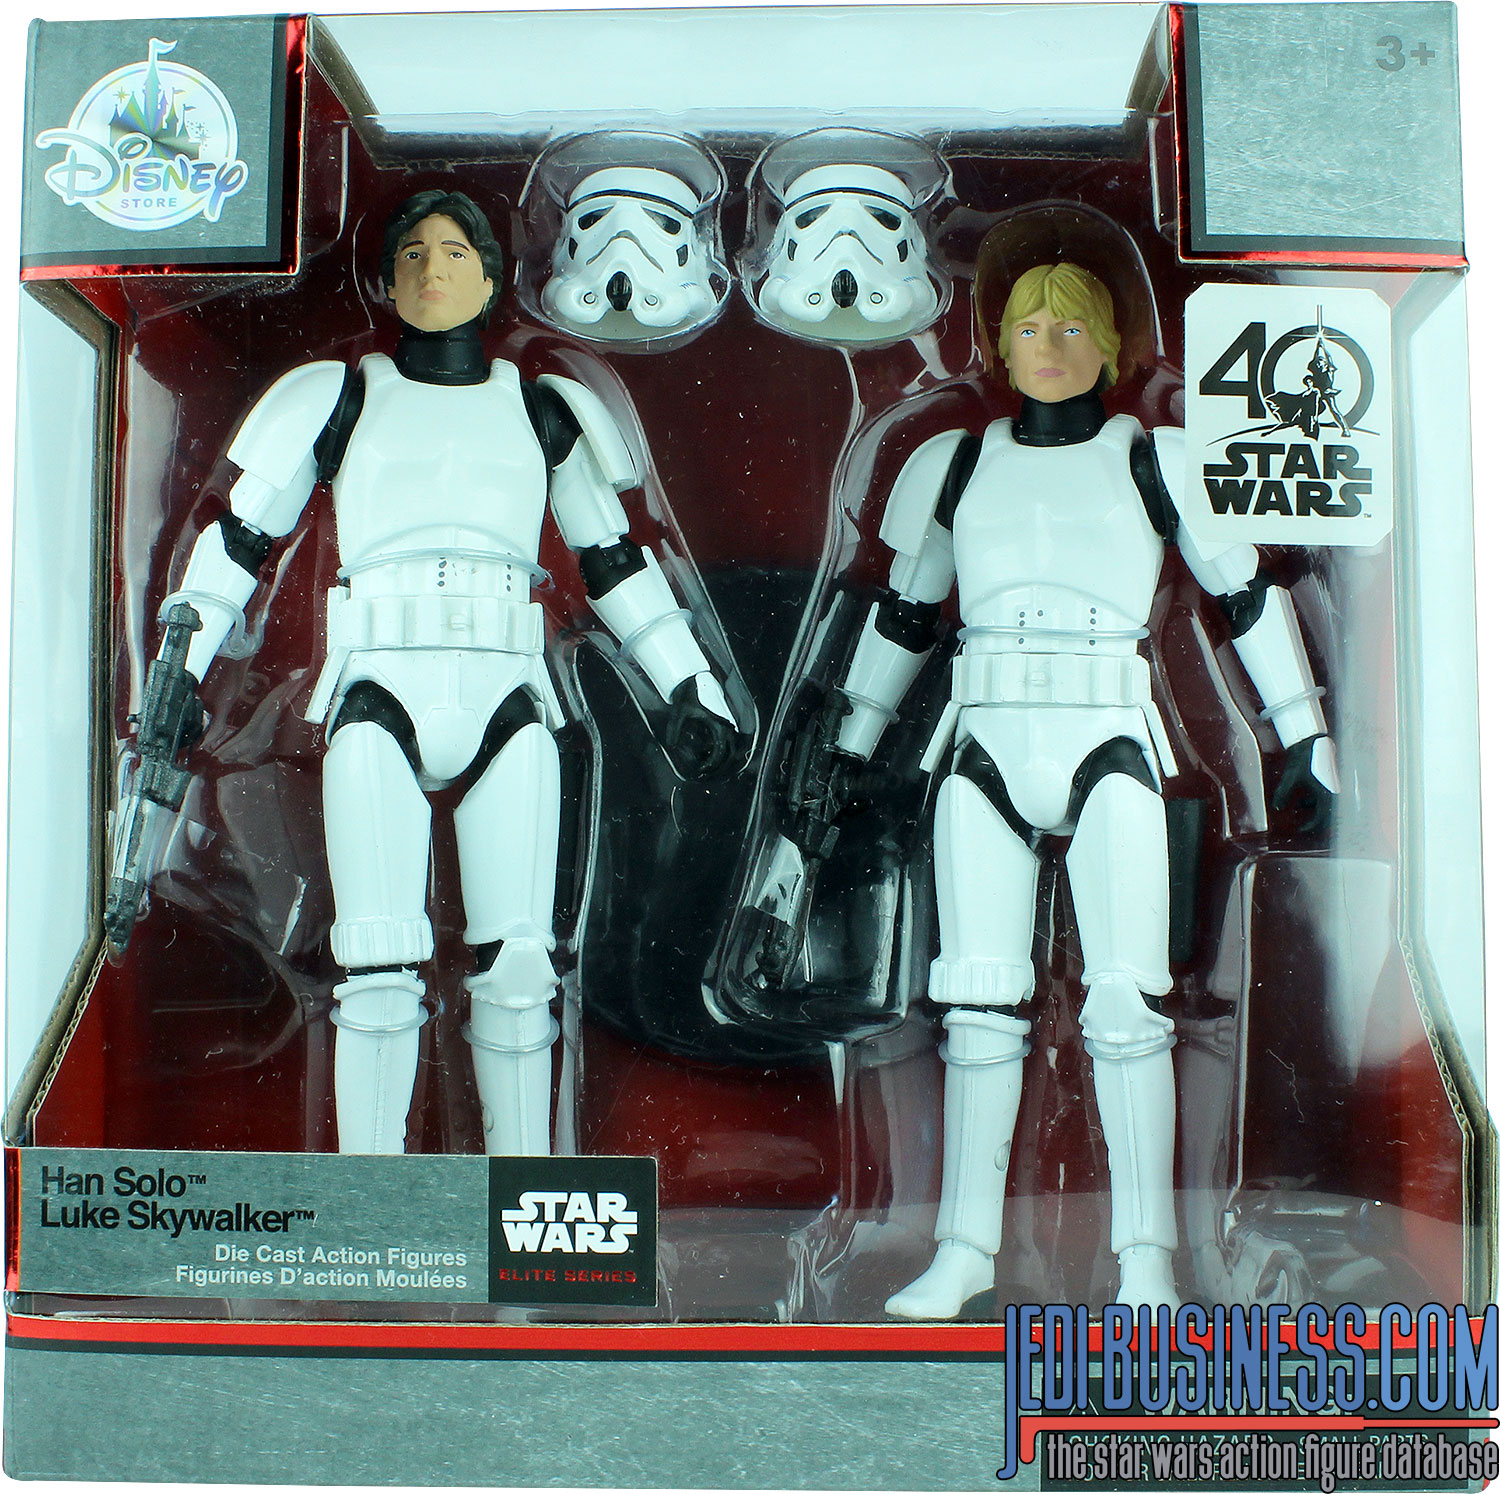 Luke Skywalker, 40th Anniversary 2-Pack